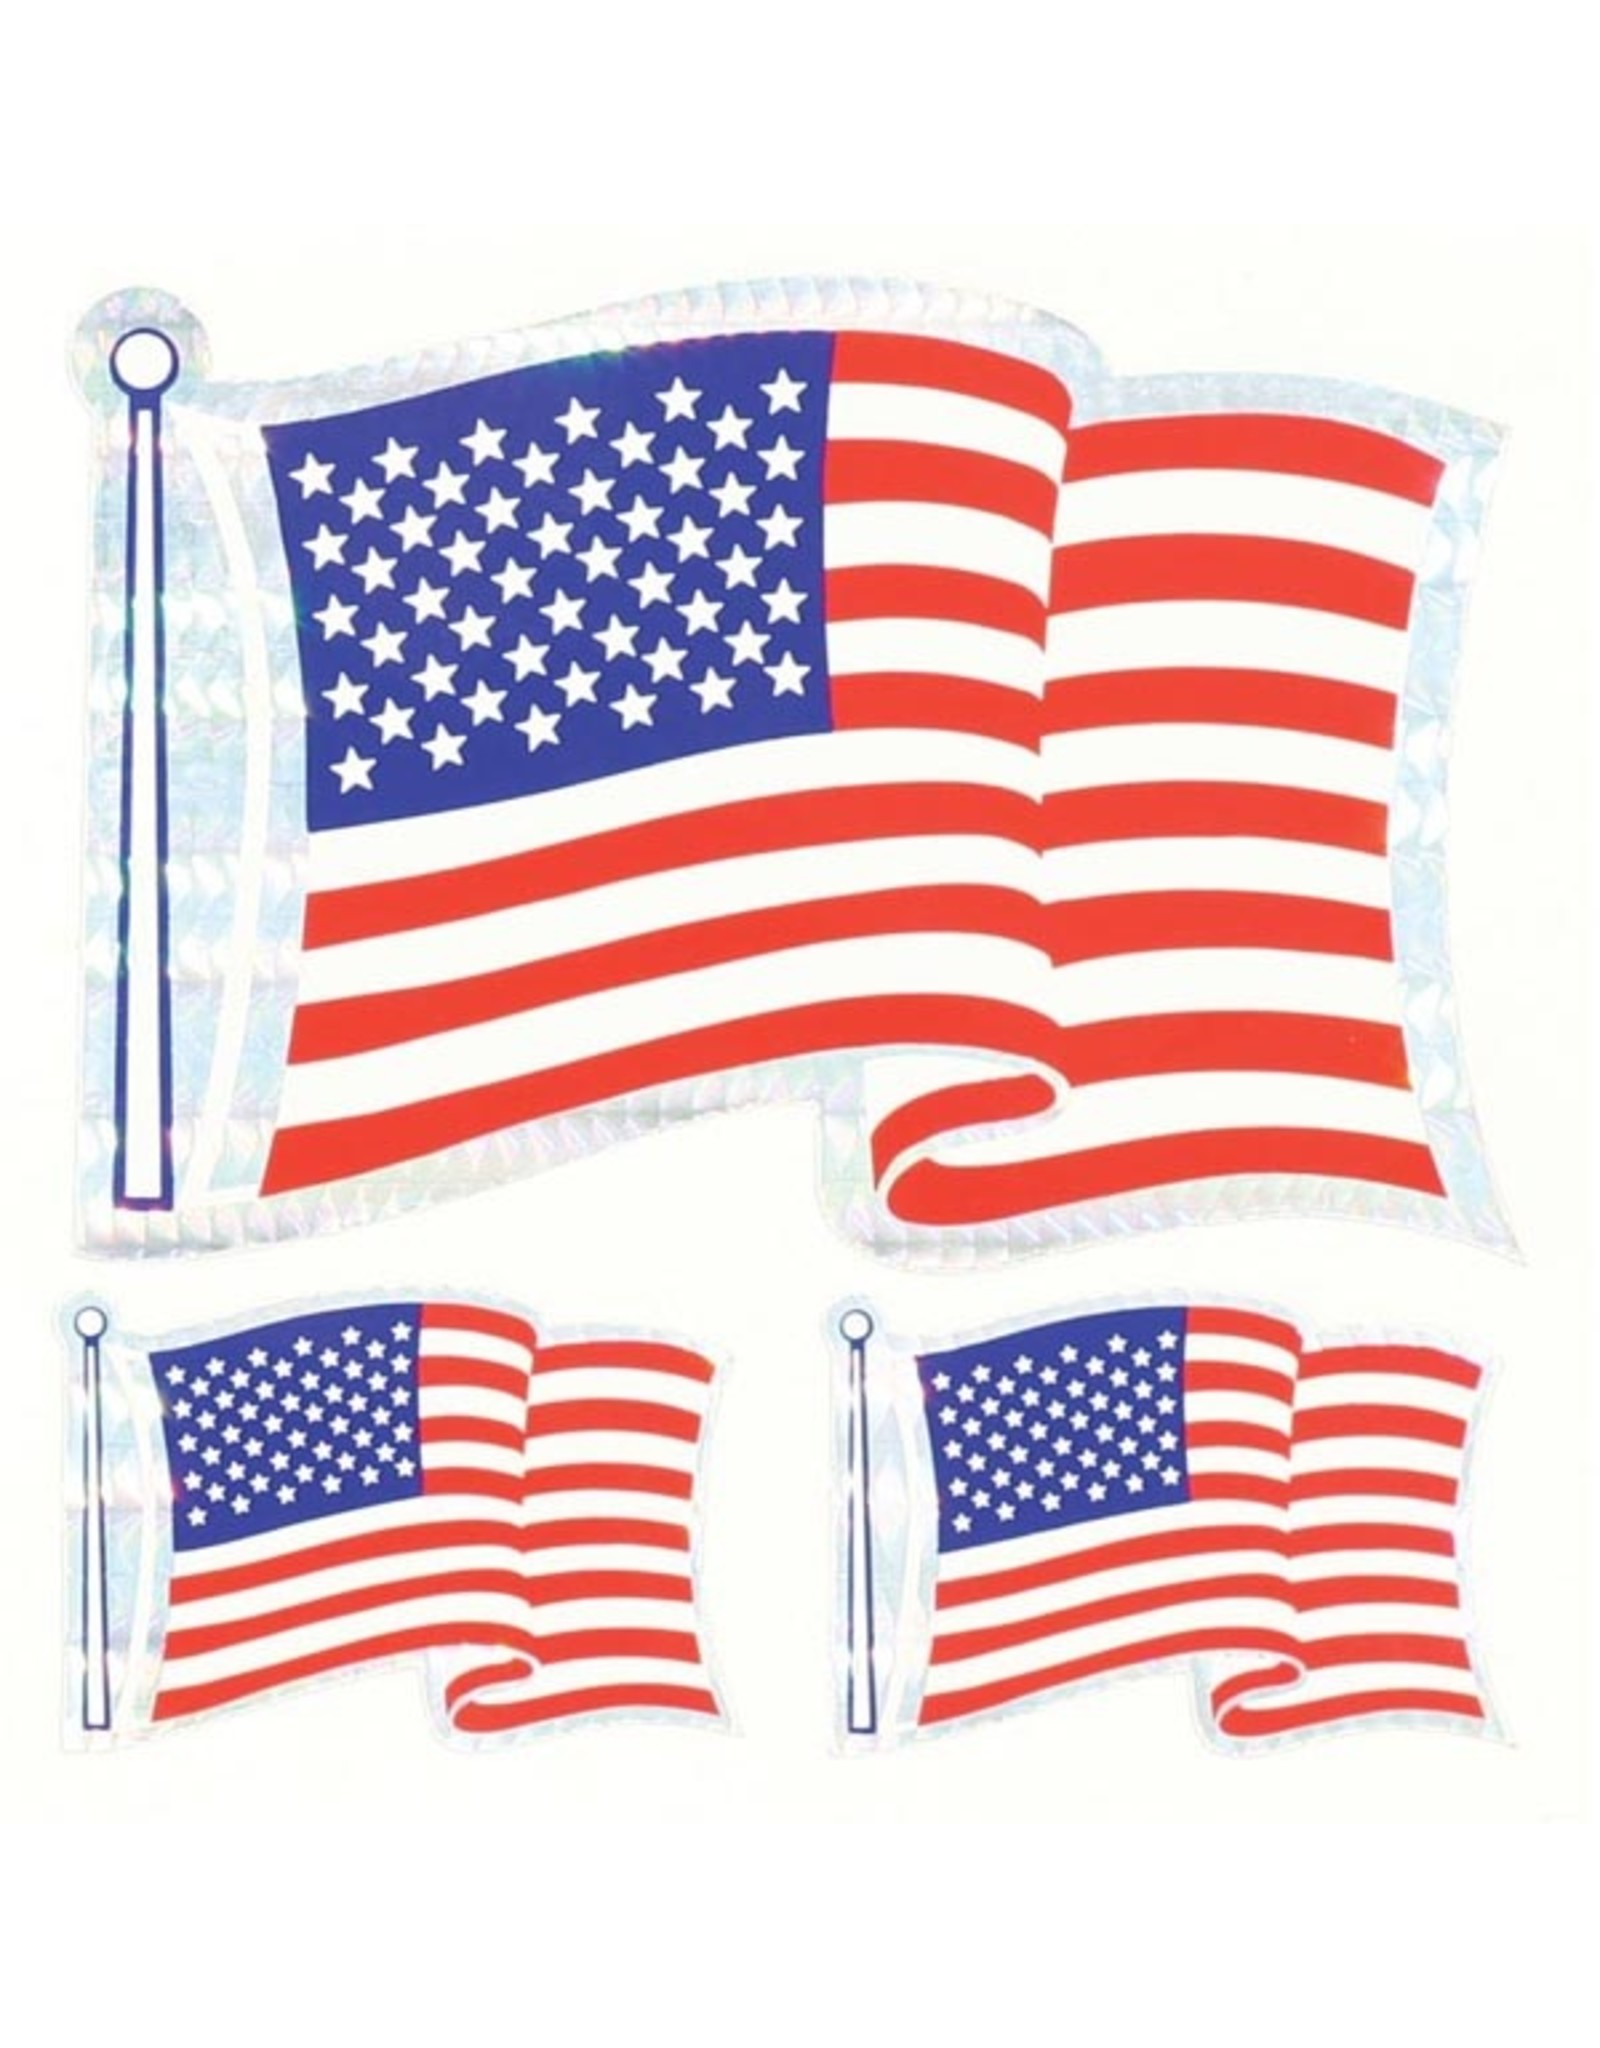 Decal - Wavy Flag - 3 Pack